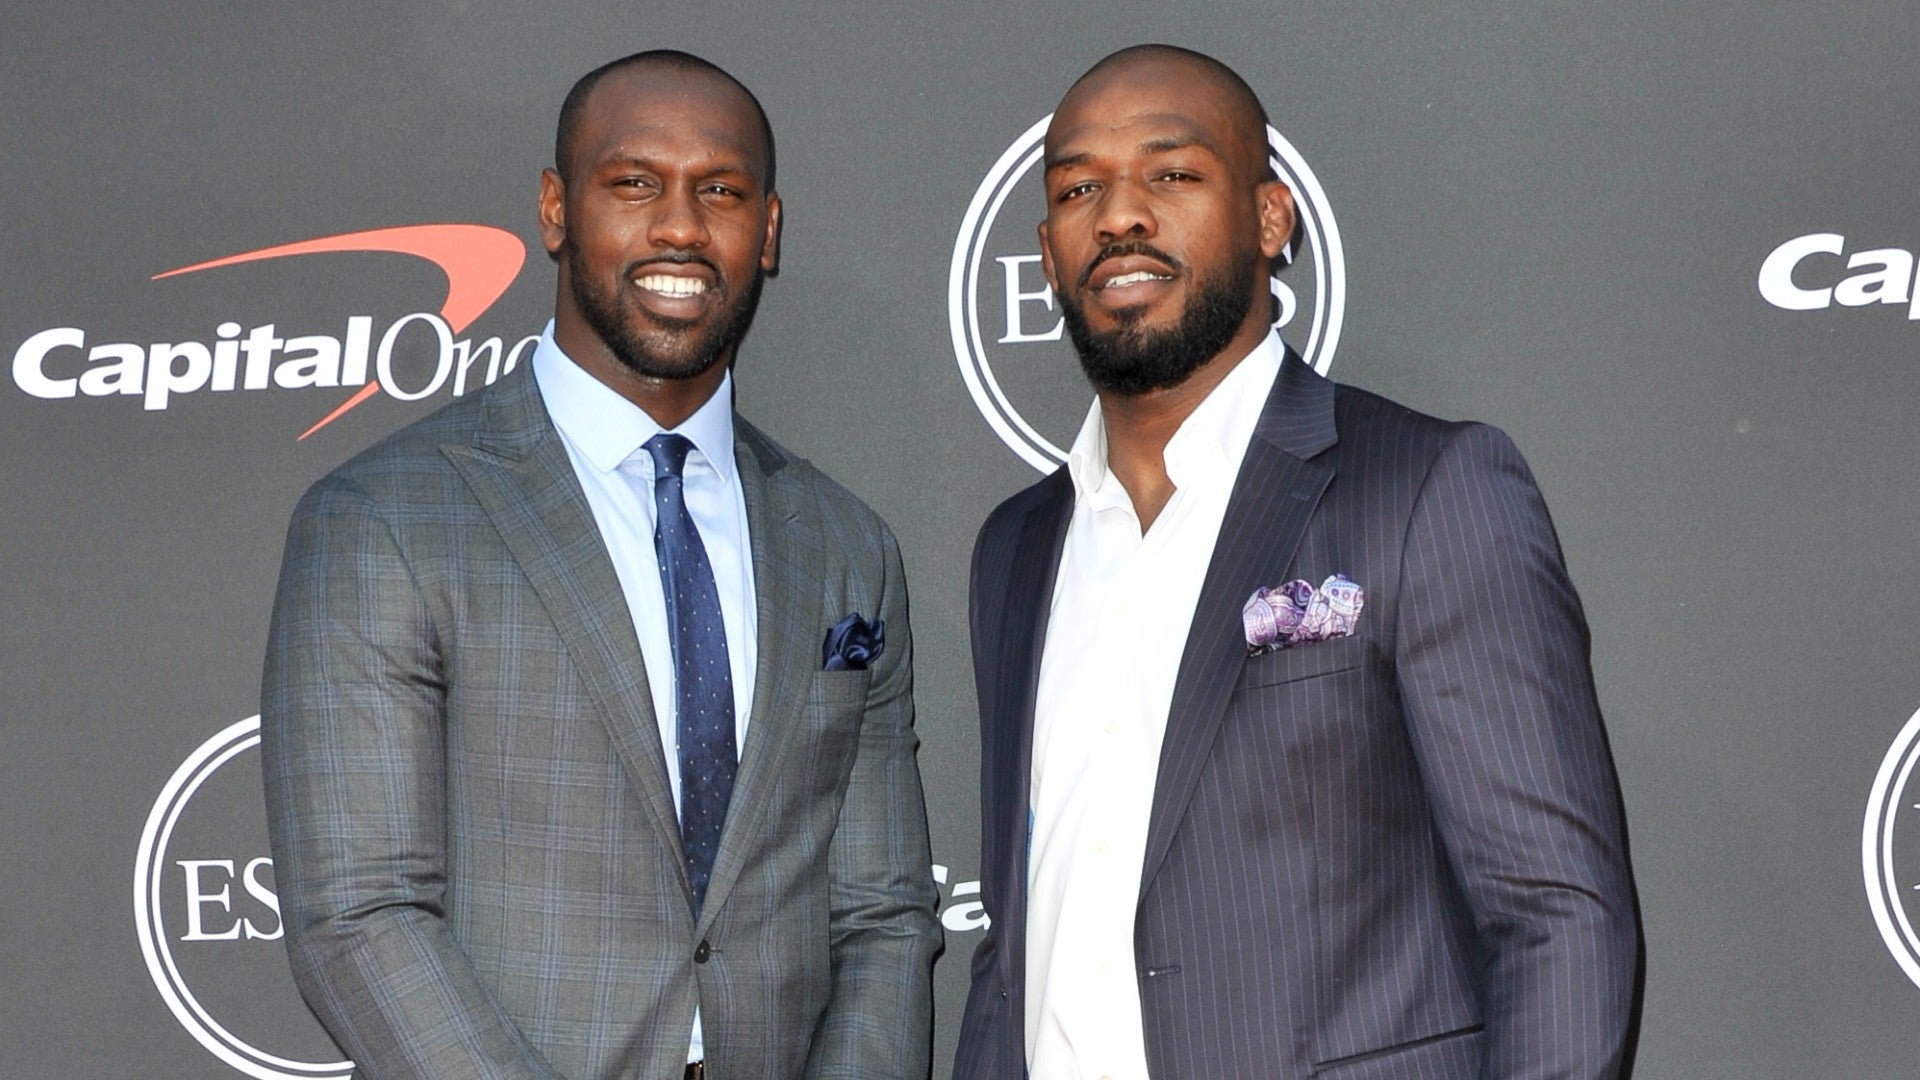 The Men Of The ESPYs Reminded Us Of Just How Much We Love Black Men In Beards